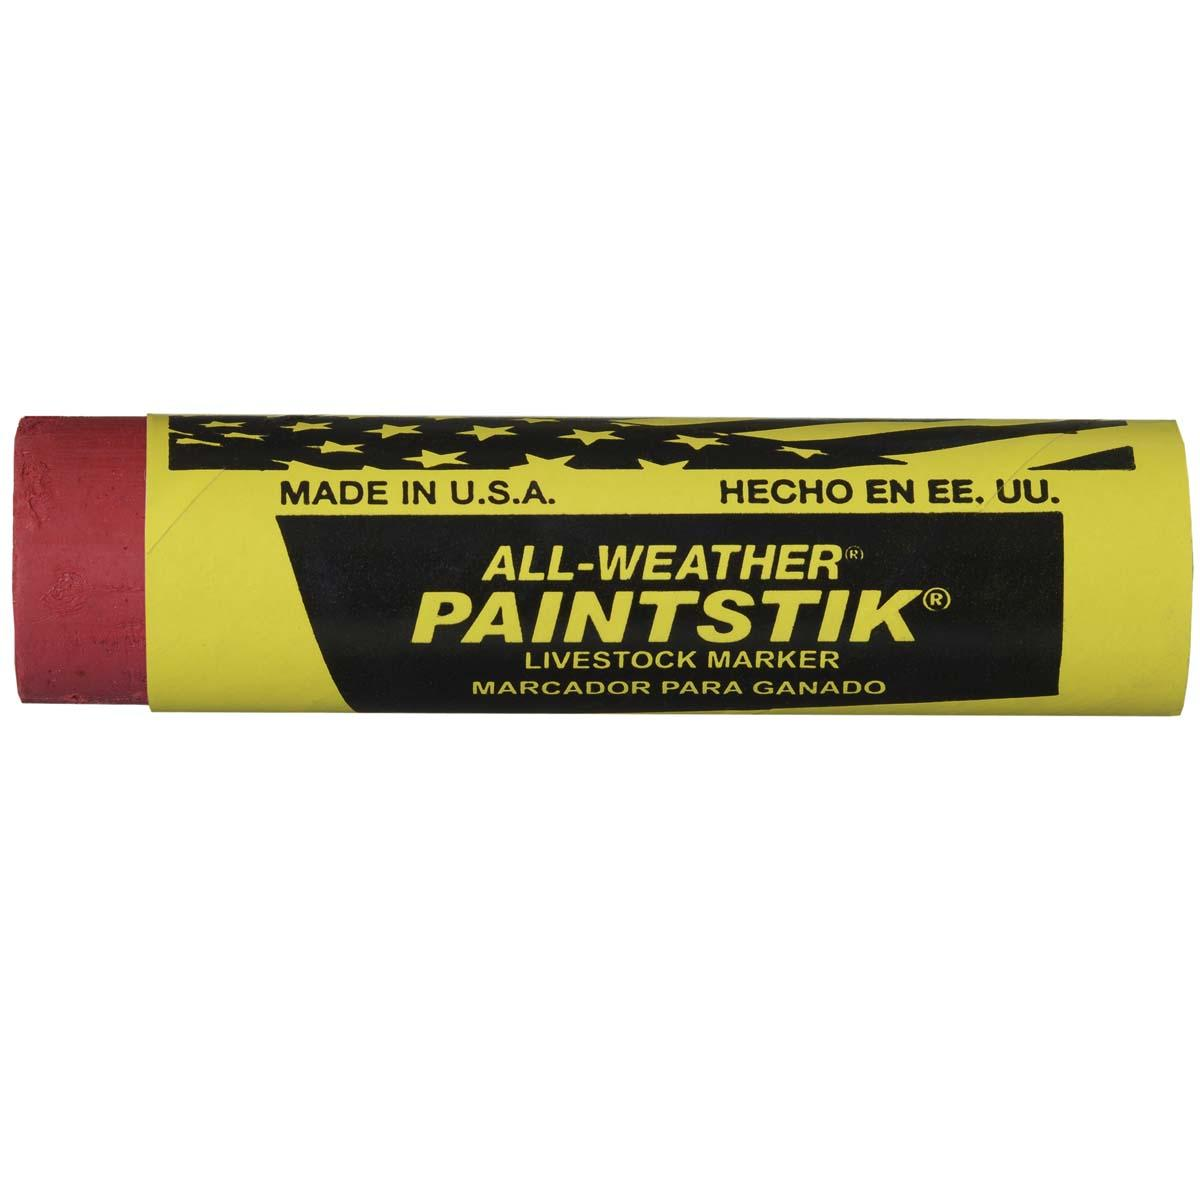 PAINTSTIK® Livestock Marker, Red